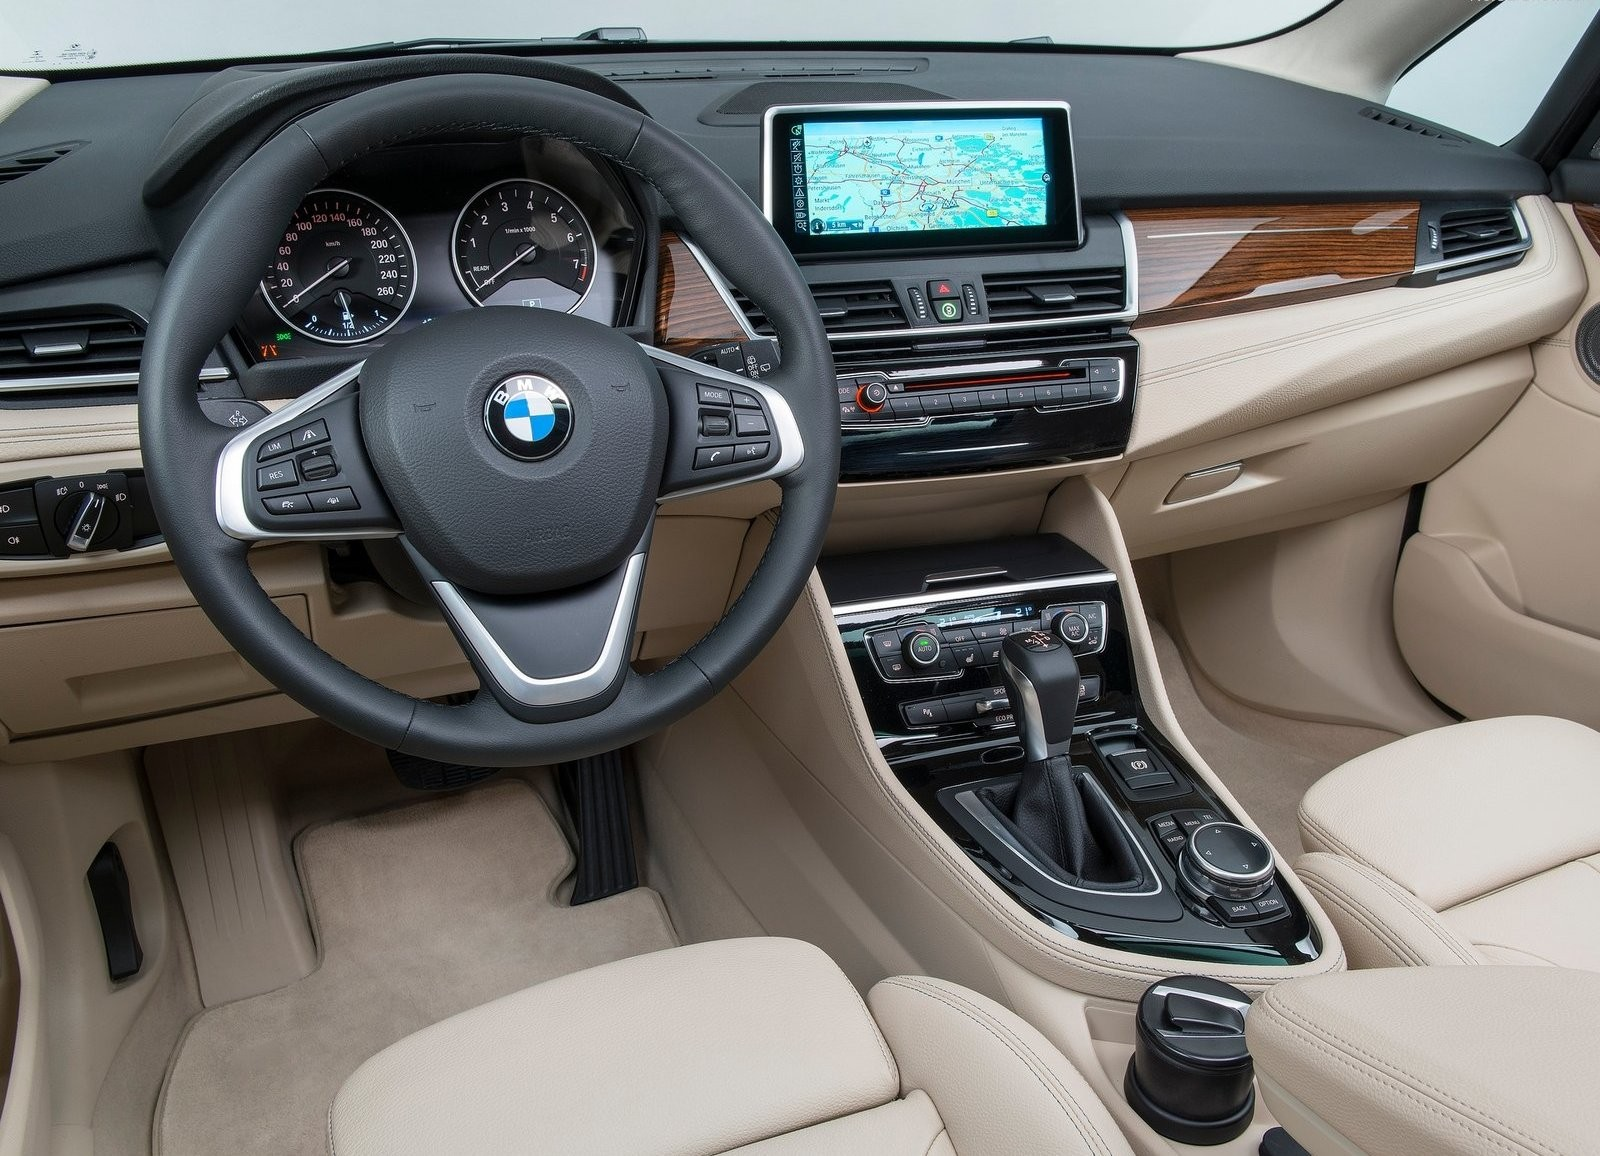 BMW 2 Series interior dash